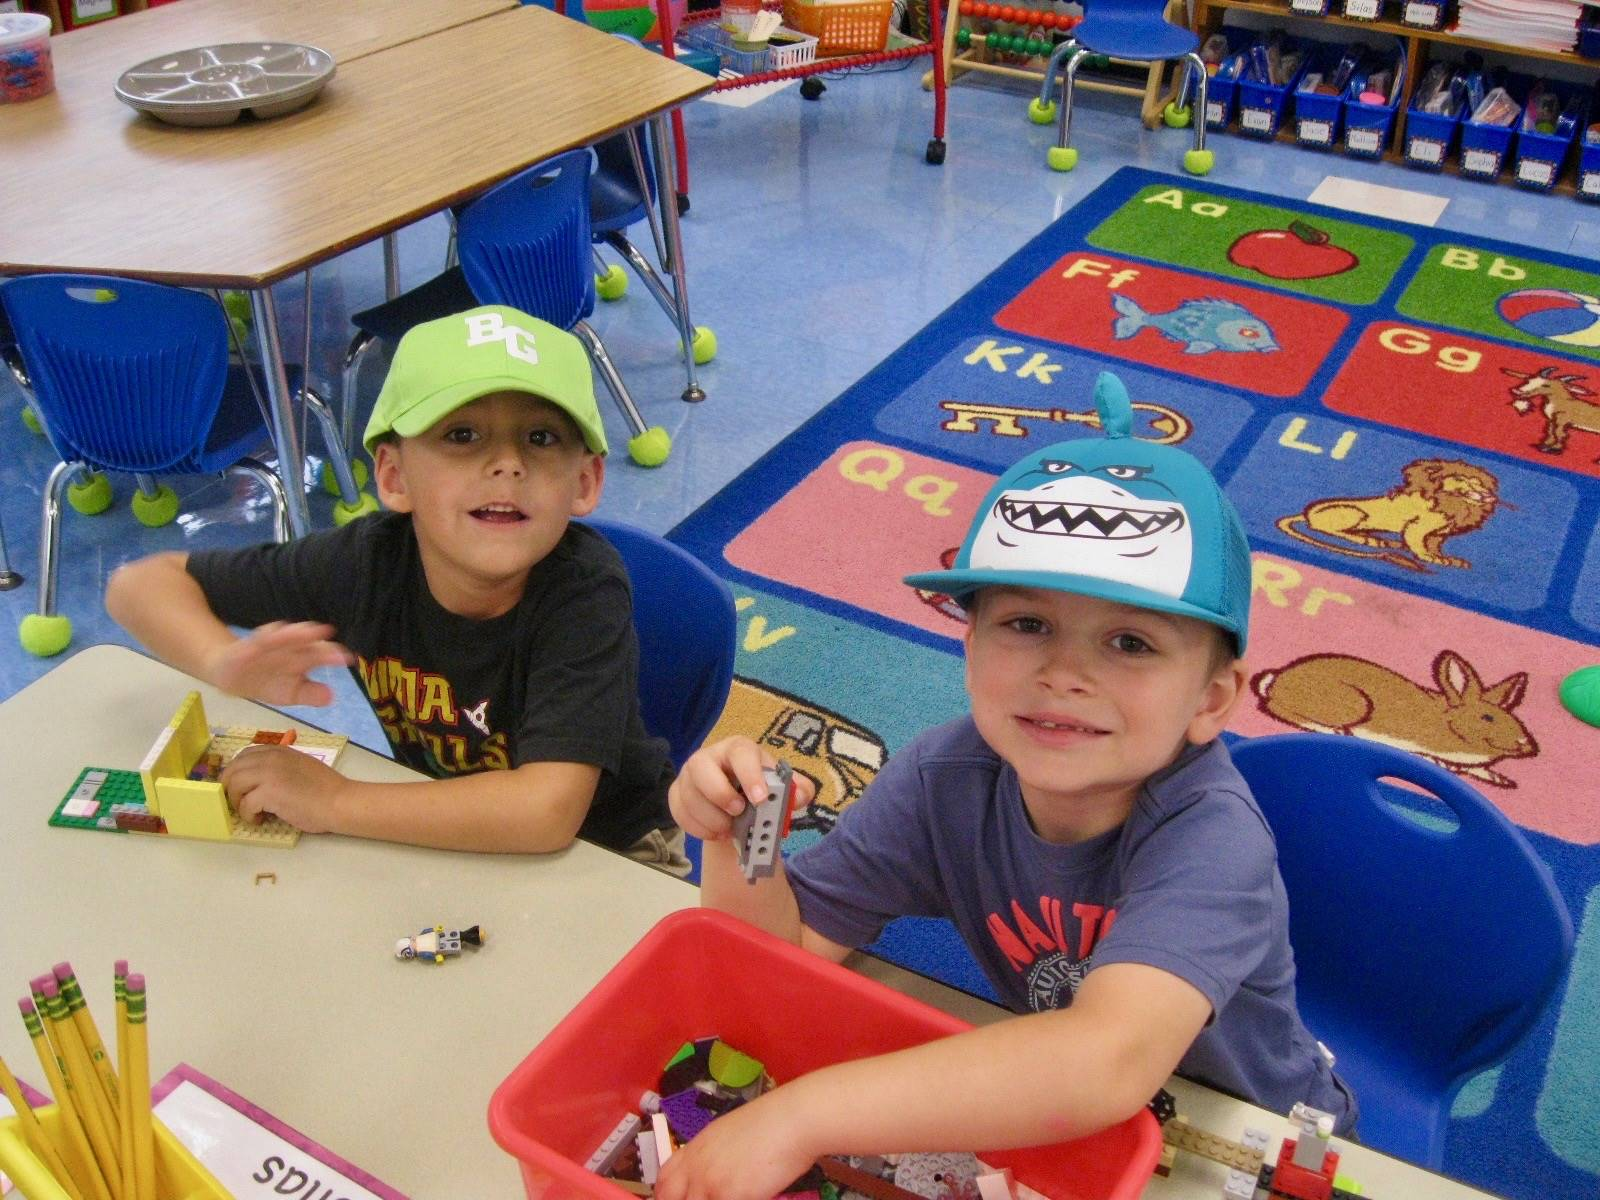 2 students work with hats on!